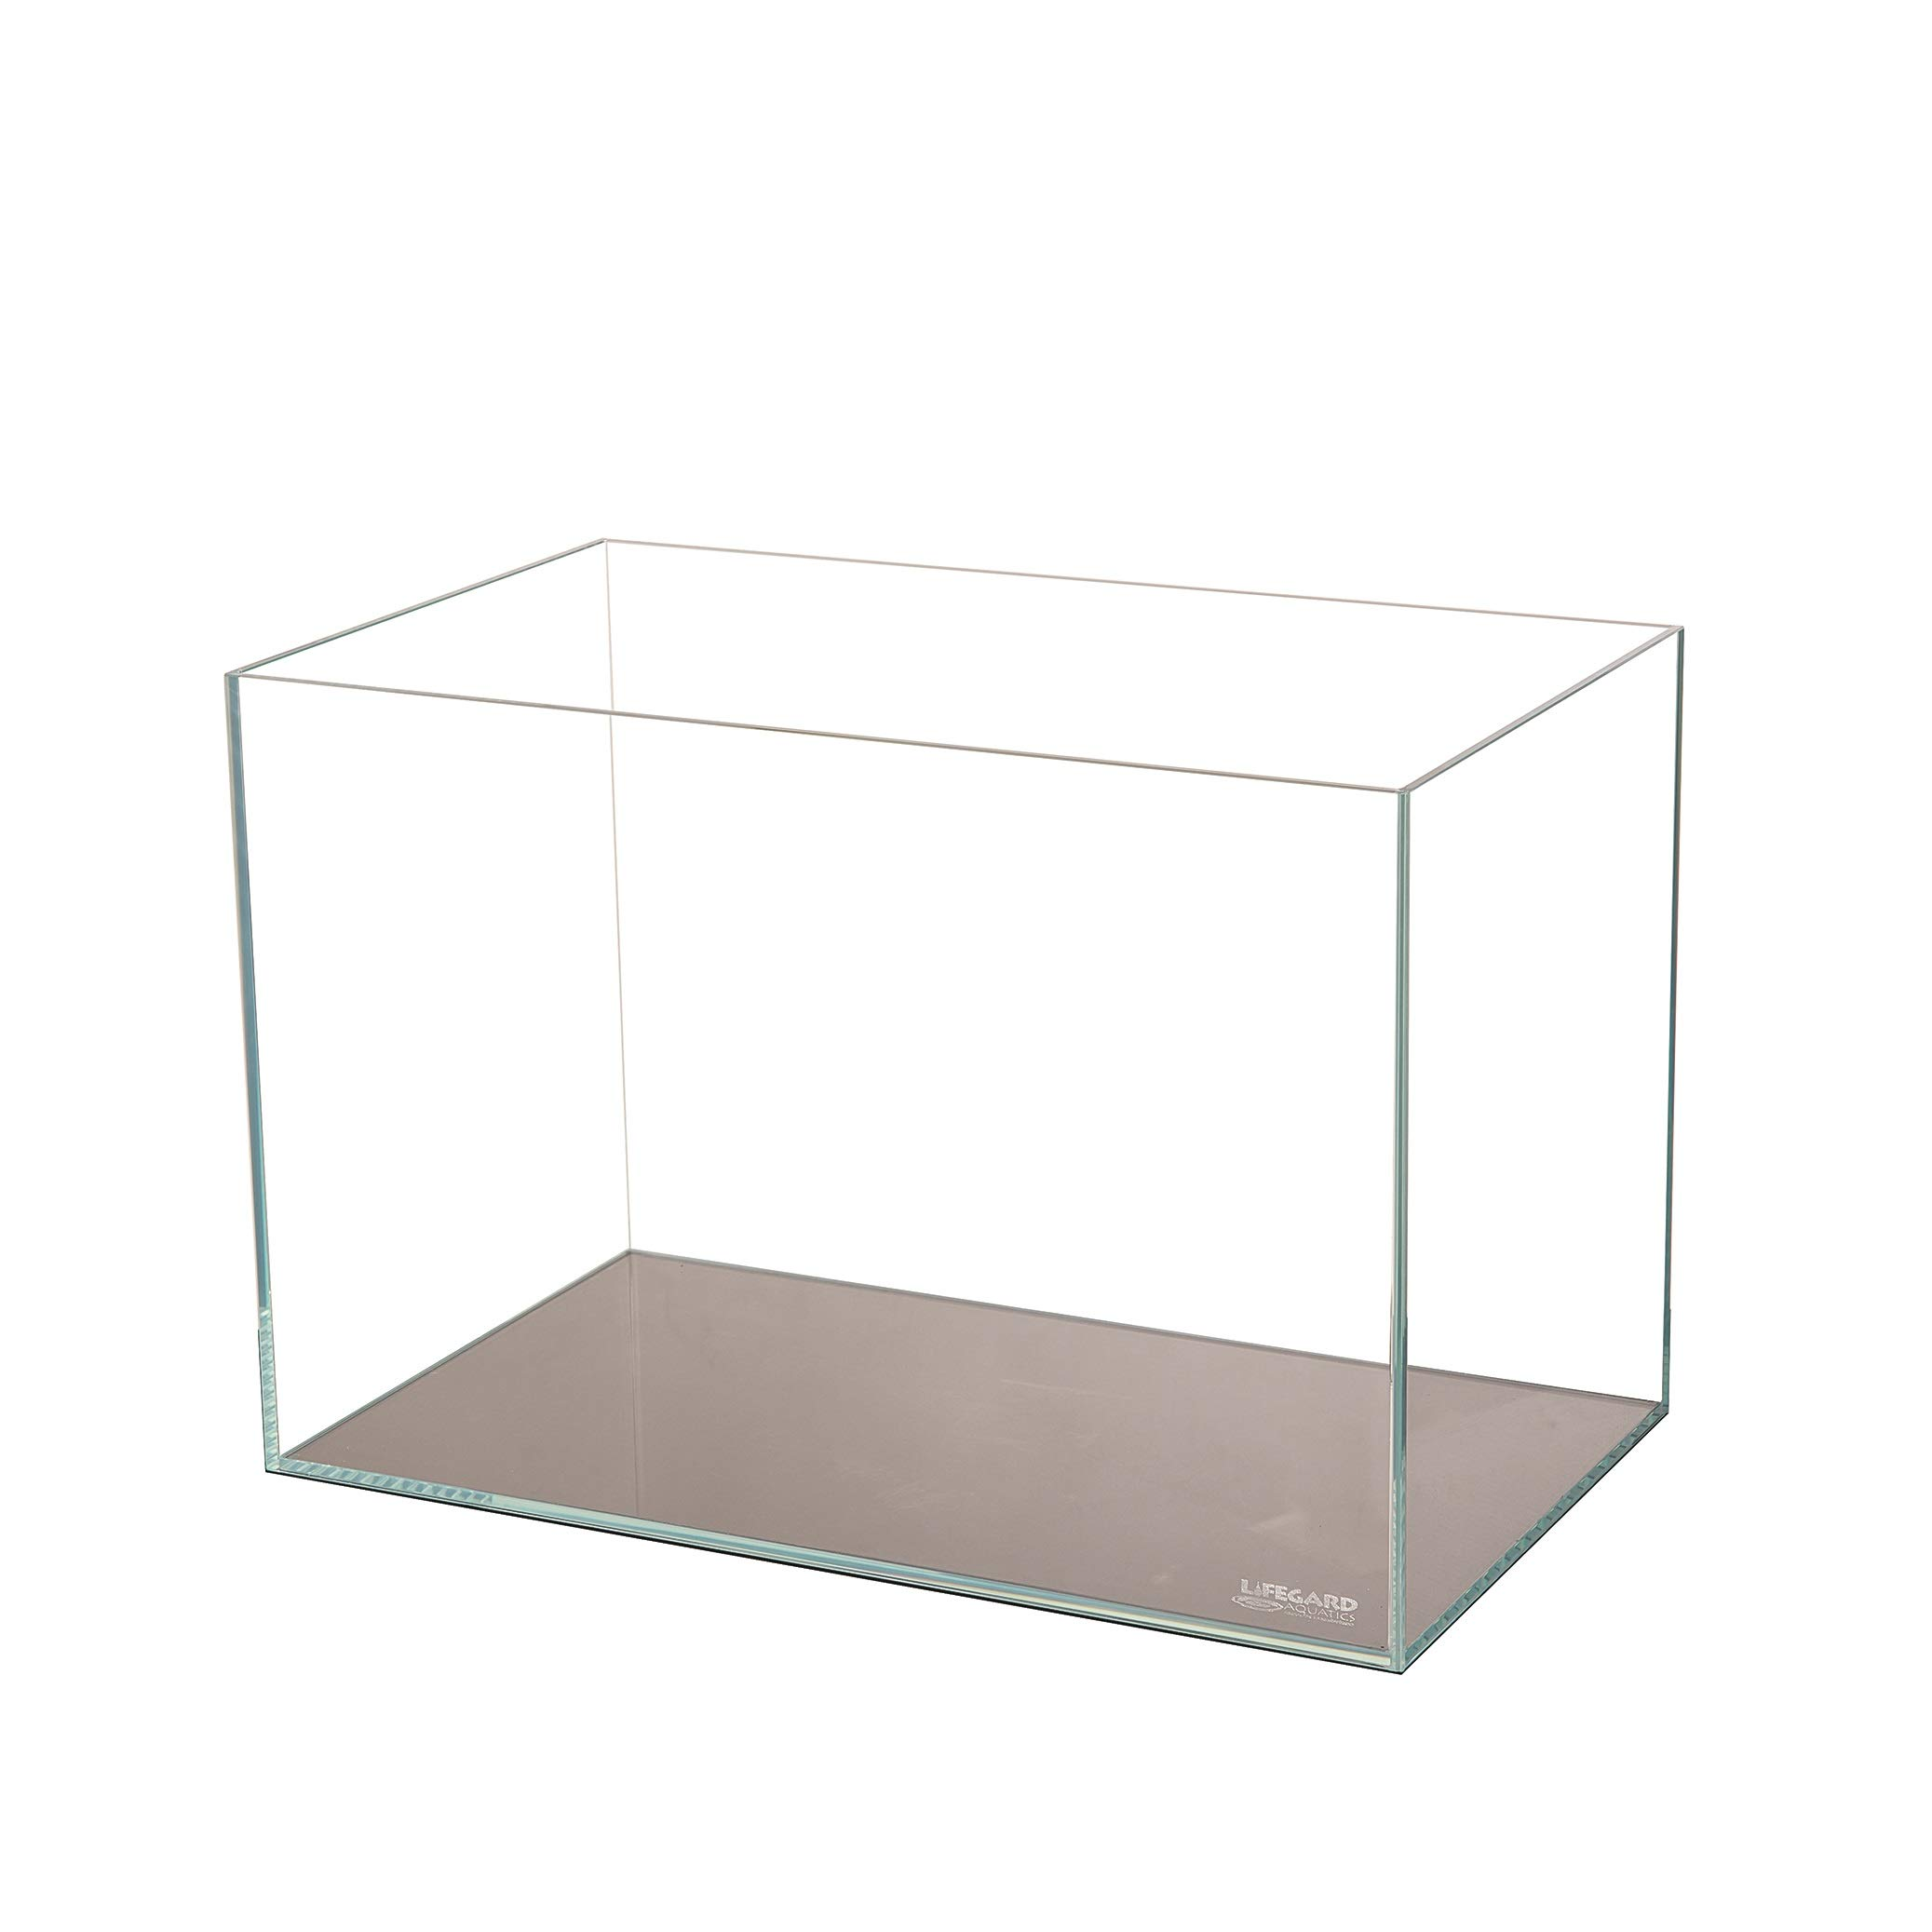 Lifegard Aquatics Ultra Low Iron Crystal Aquarium Beveled Edge 45° Rimless 17.11 Gallons, Clear by Lifegard Aquatics